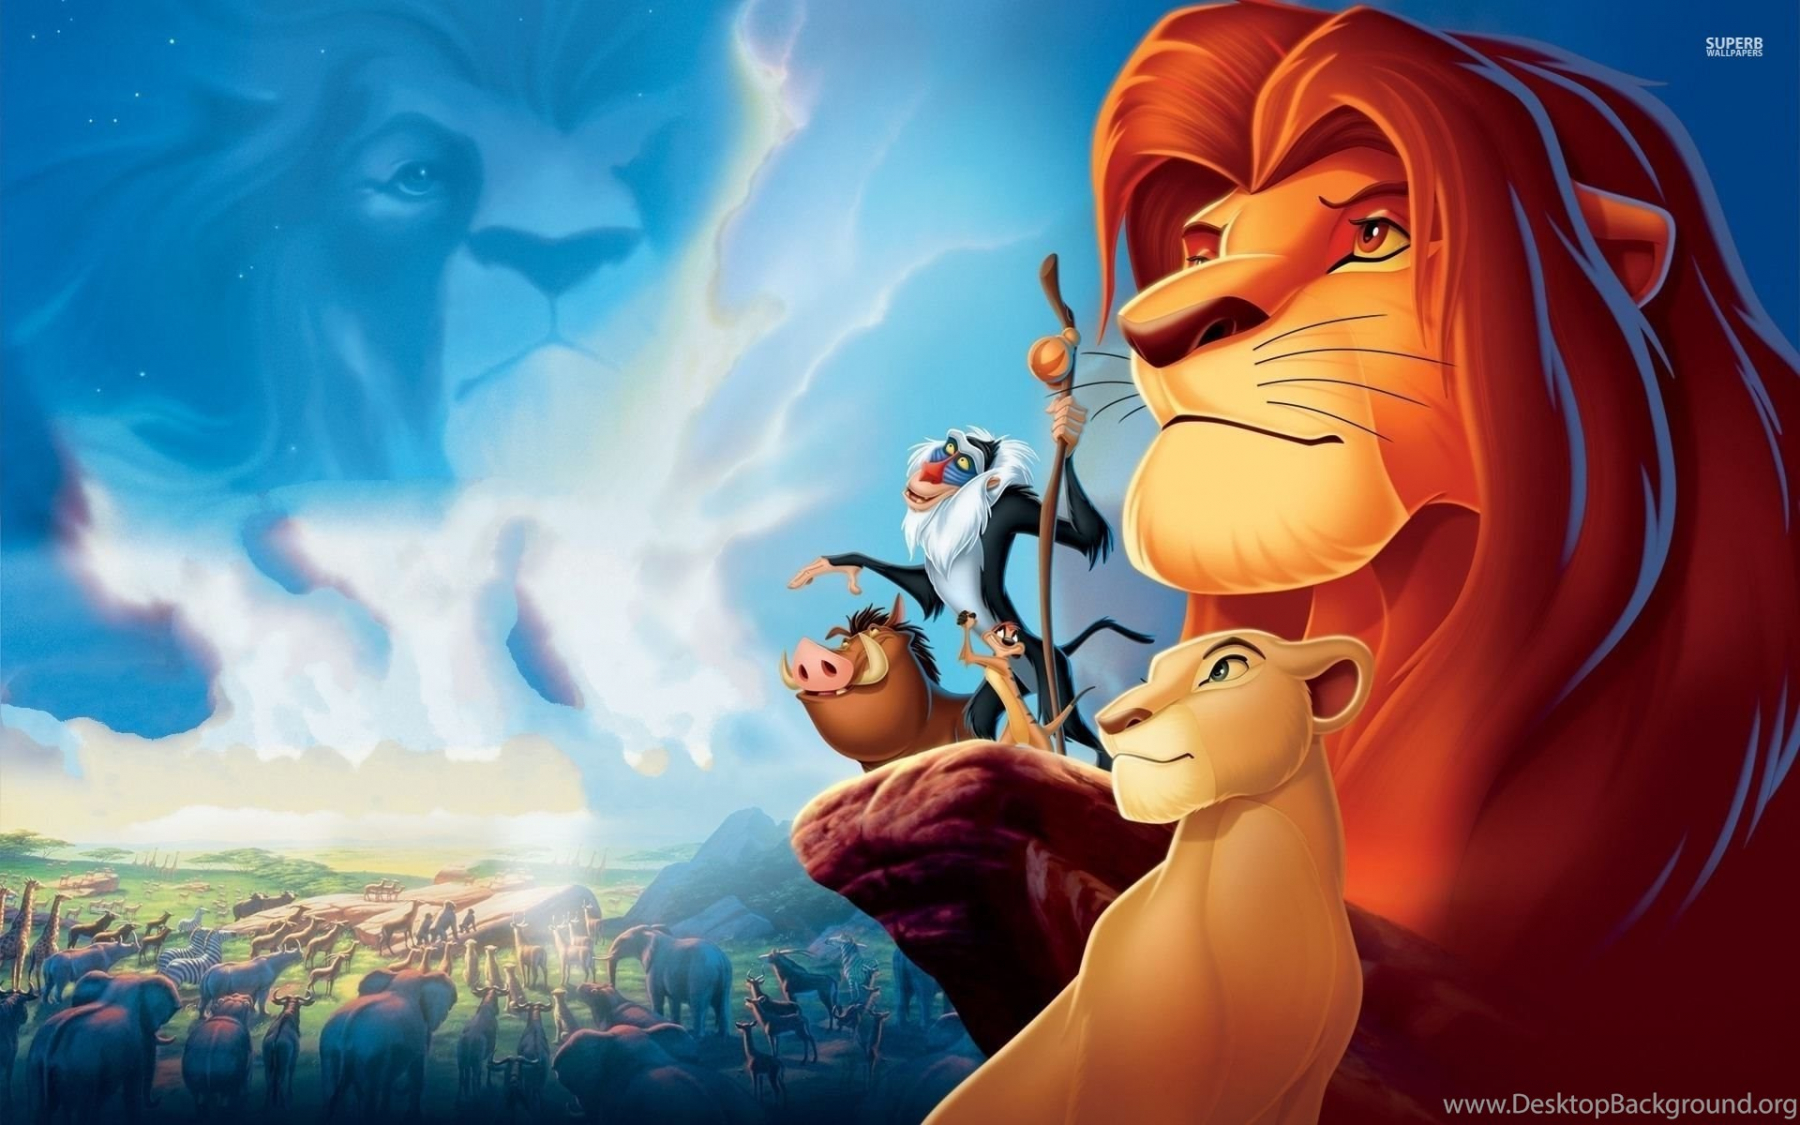 940219_the-lion-king-wallpapers_1920x1200_h